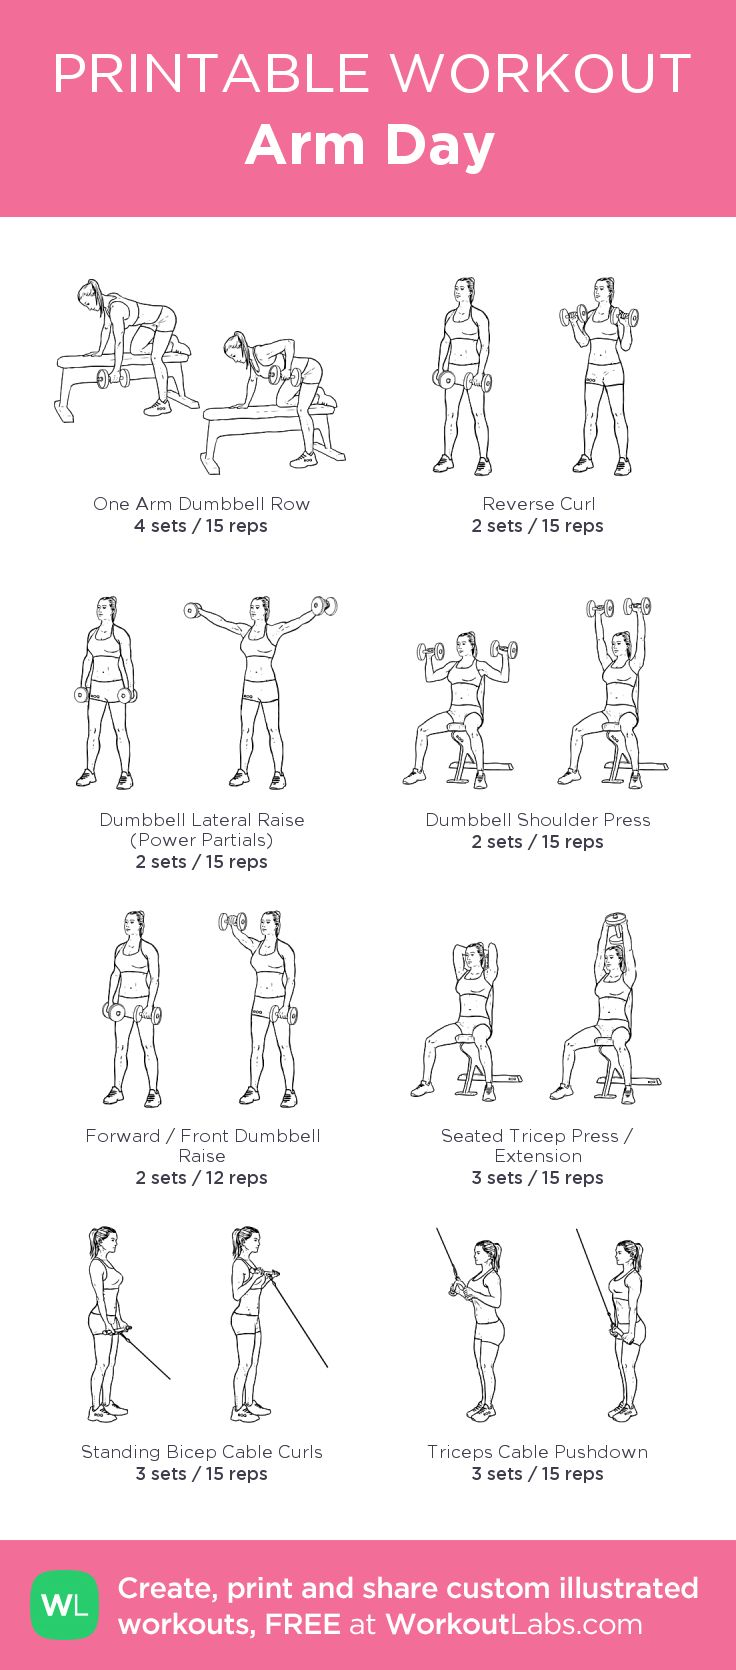 Arm Day: my custom printable workout by @WorkoutLabs